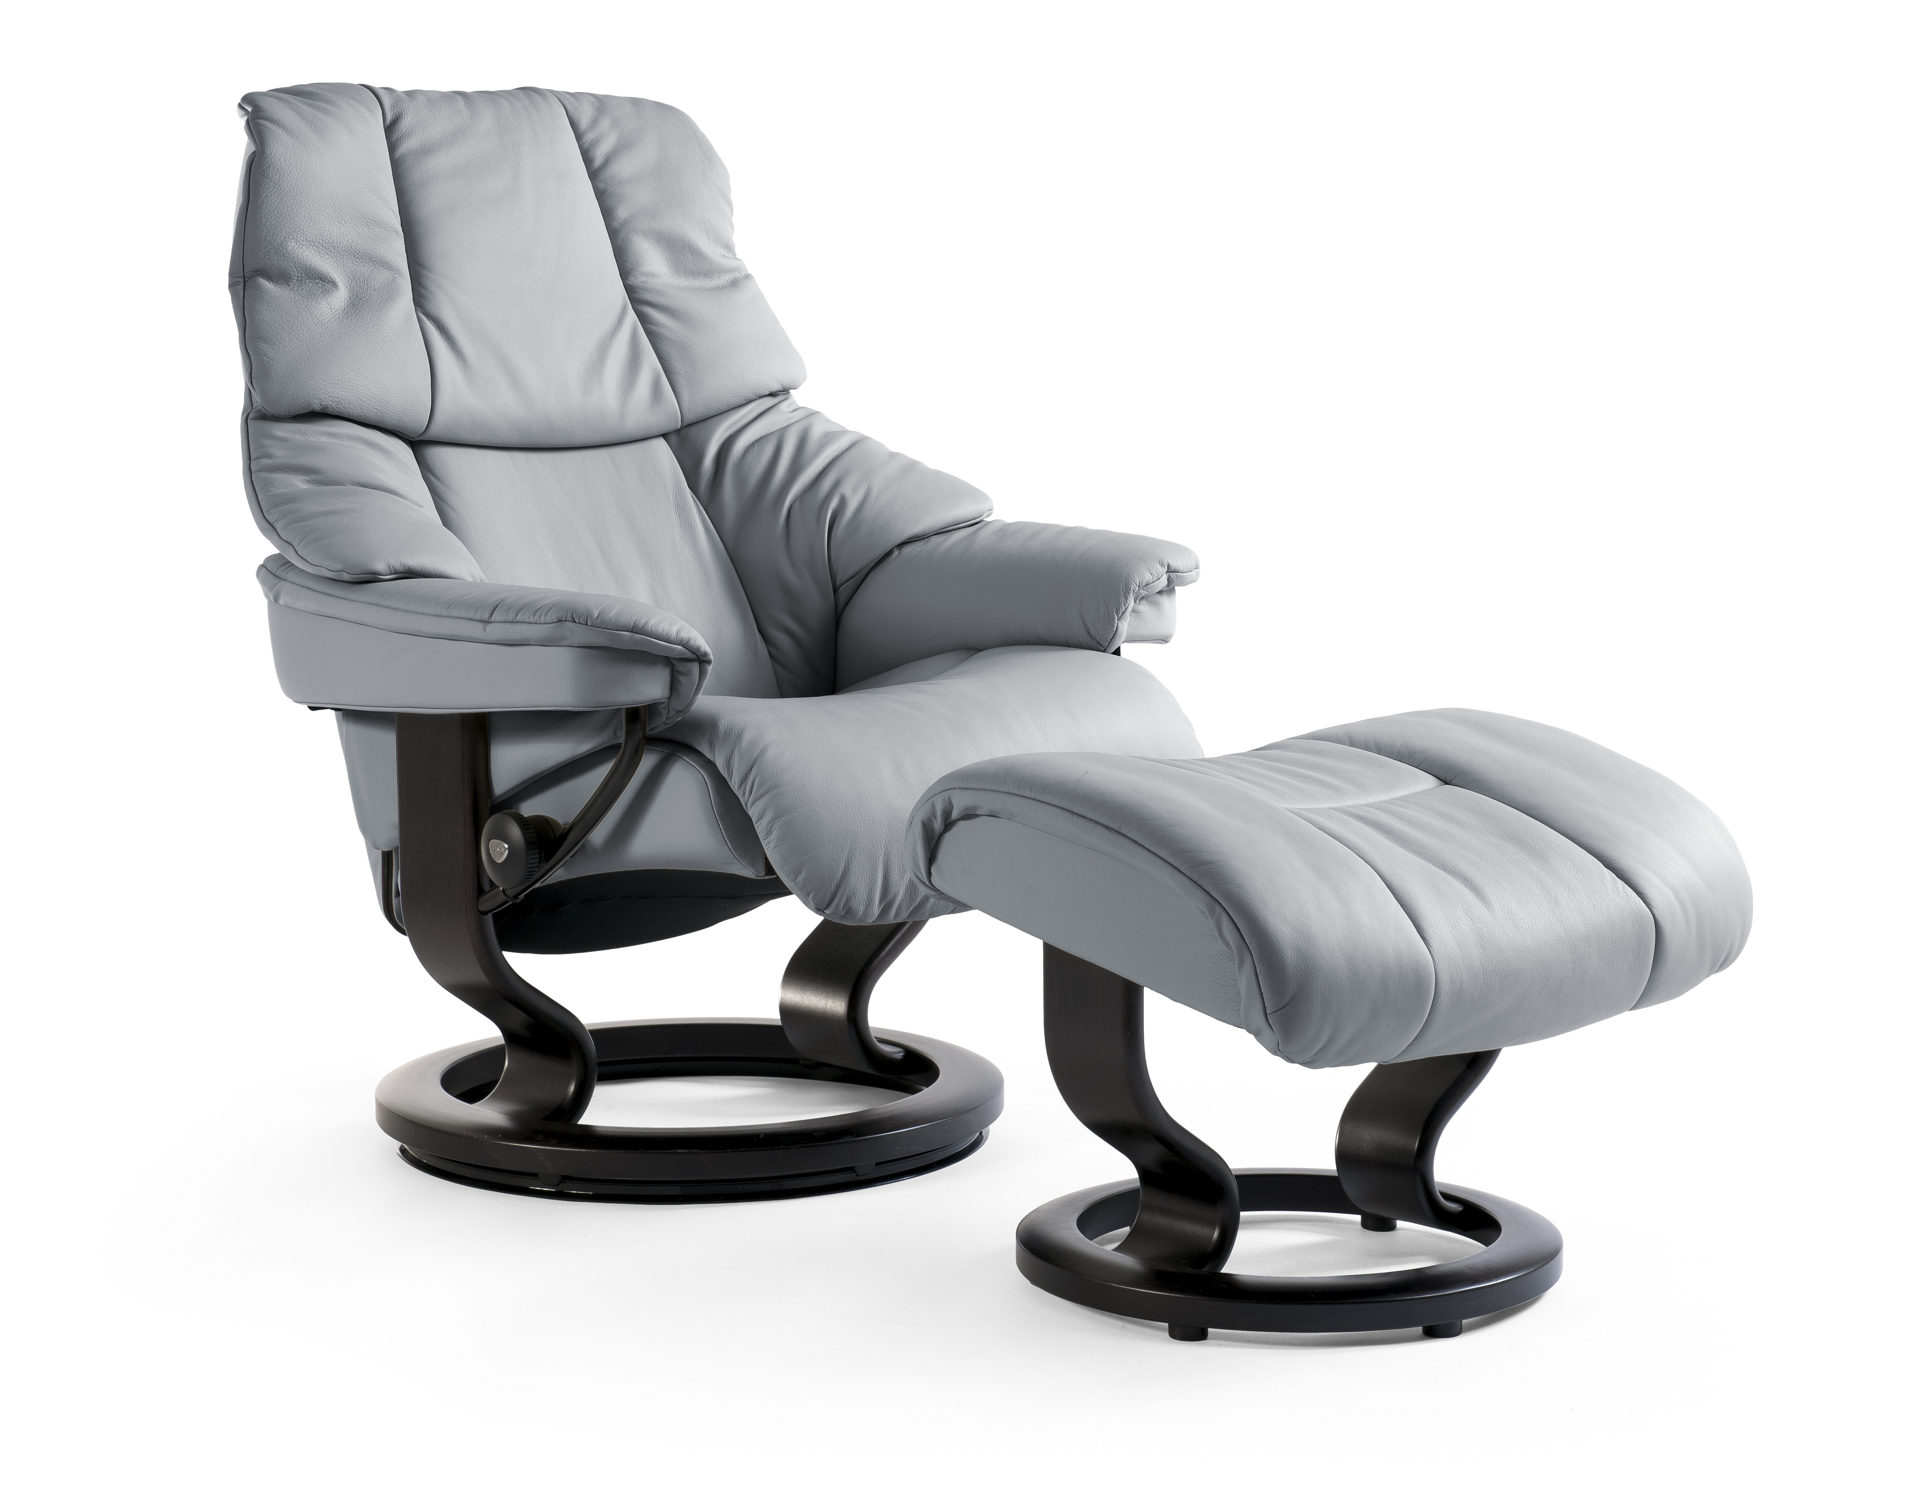 Sessel Set Ekornes Stressless Reno Relaxsessel Mit Hocker Noblesse Grey  Wenge Small Reno Classic S Pictures Gallery